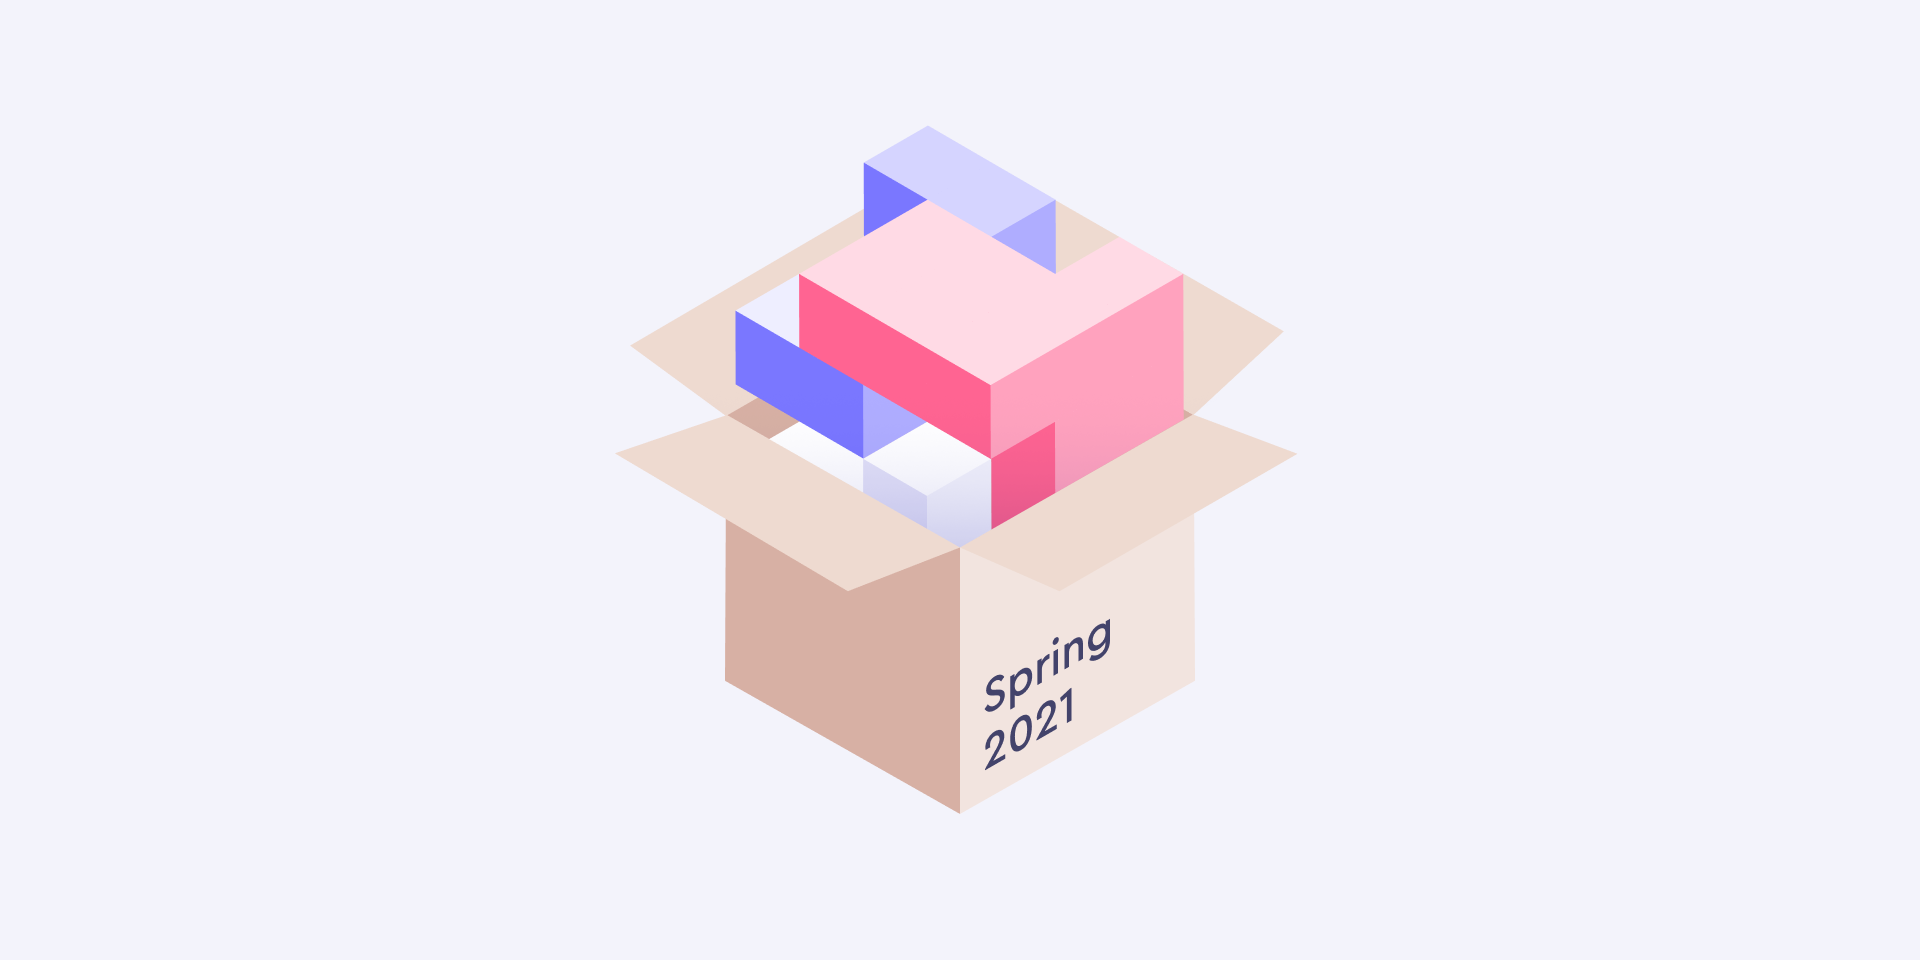 Spring 2021 newsletter: Cube Store! Vue in the Playground! A new forum!